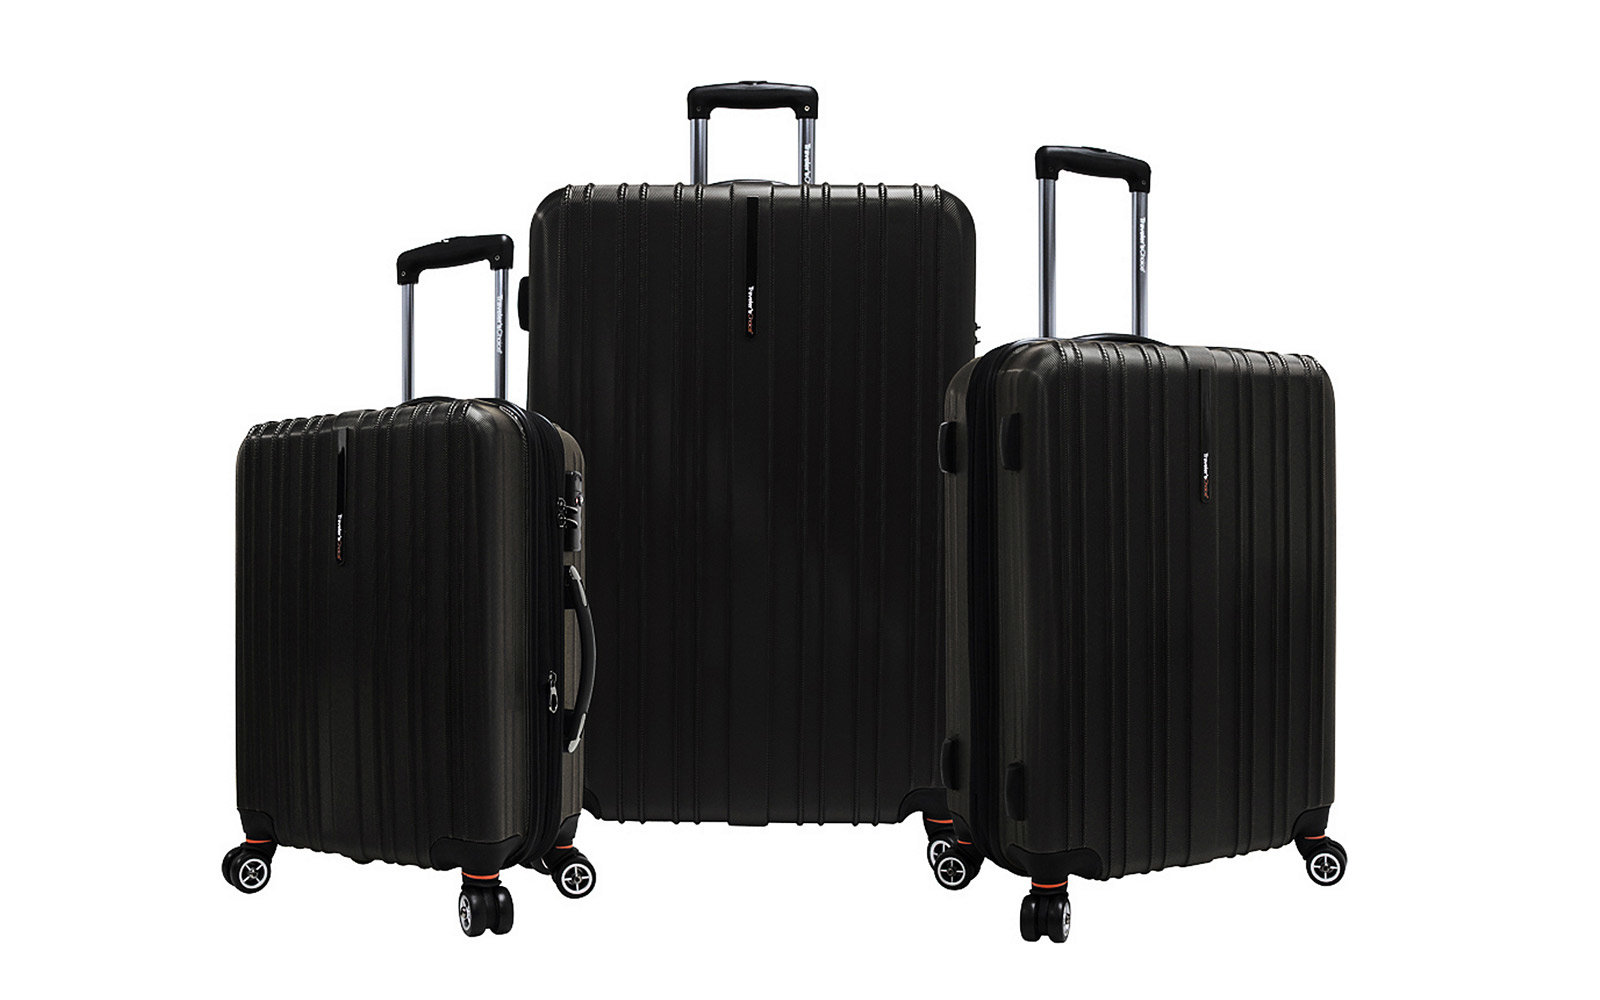 travelers choice luggage set cheap